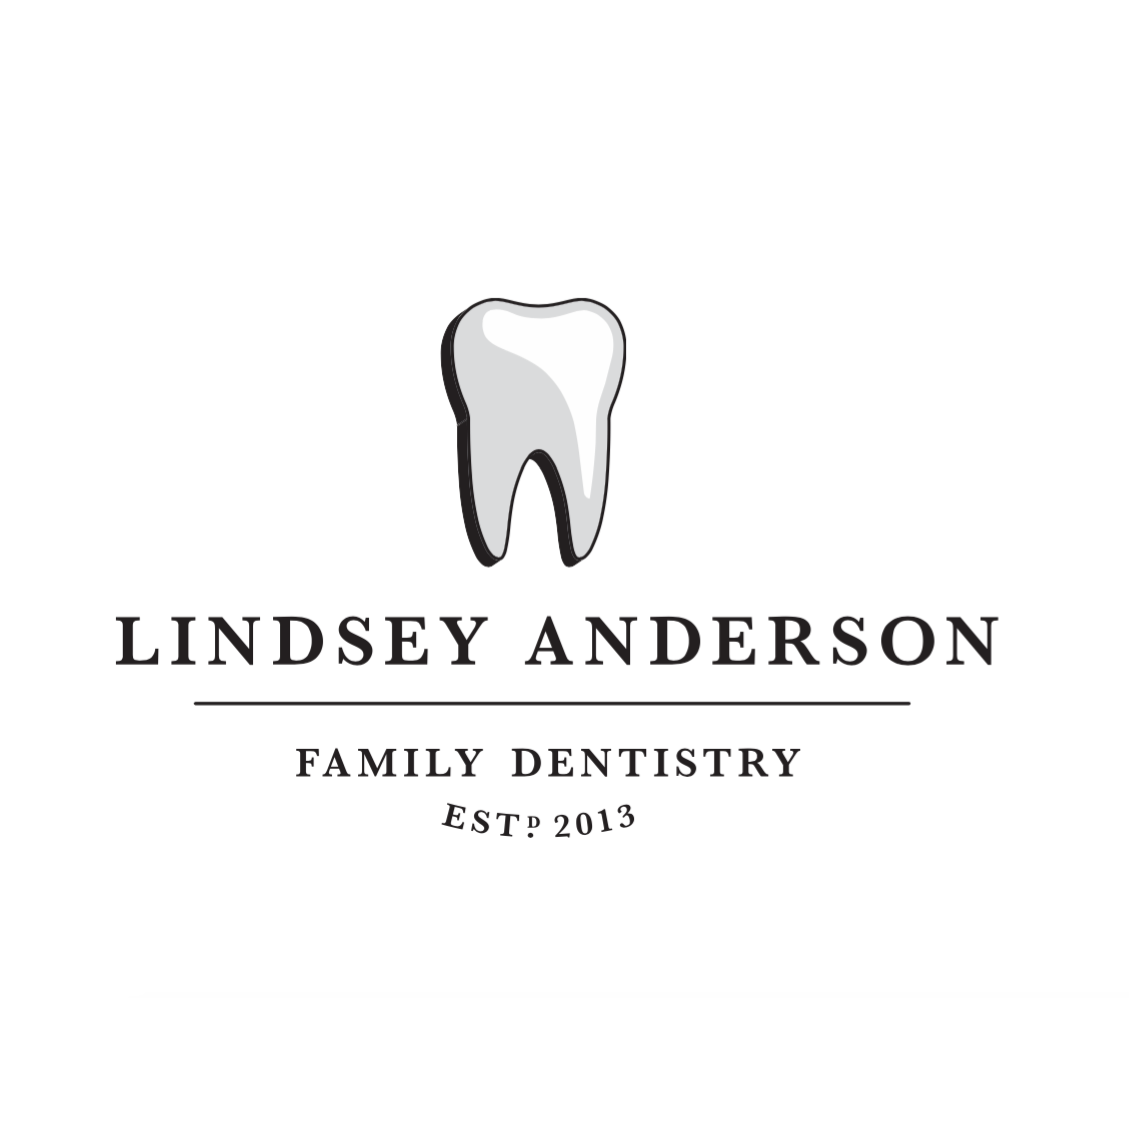 image of Lindsey Anderson Family Dentistry